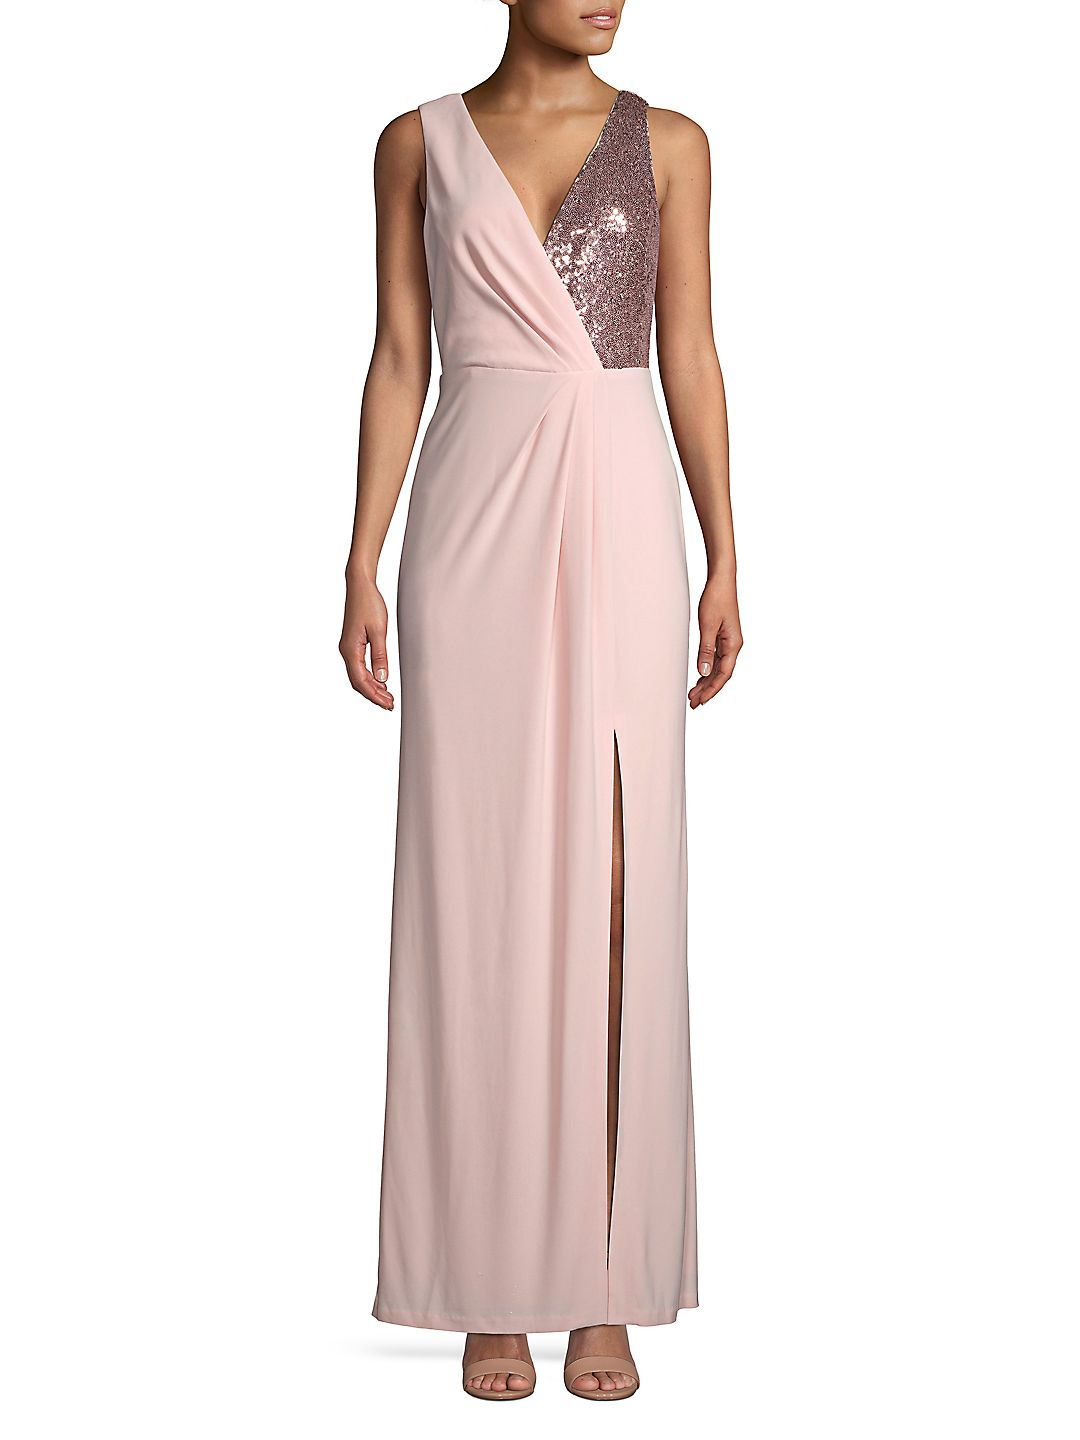 Sequin Chiffon Gown